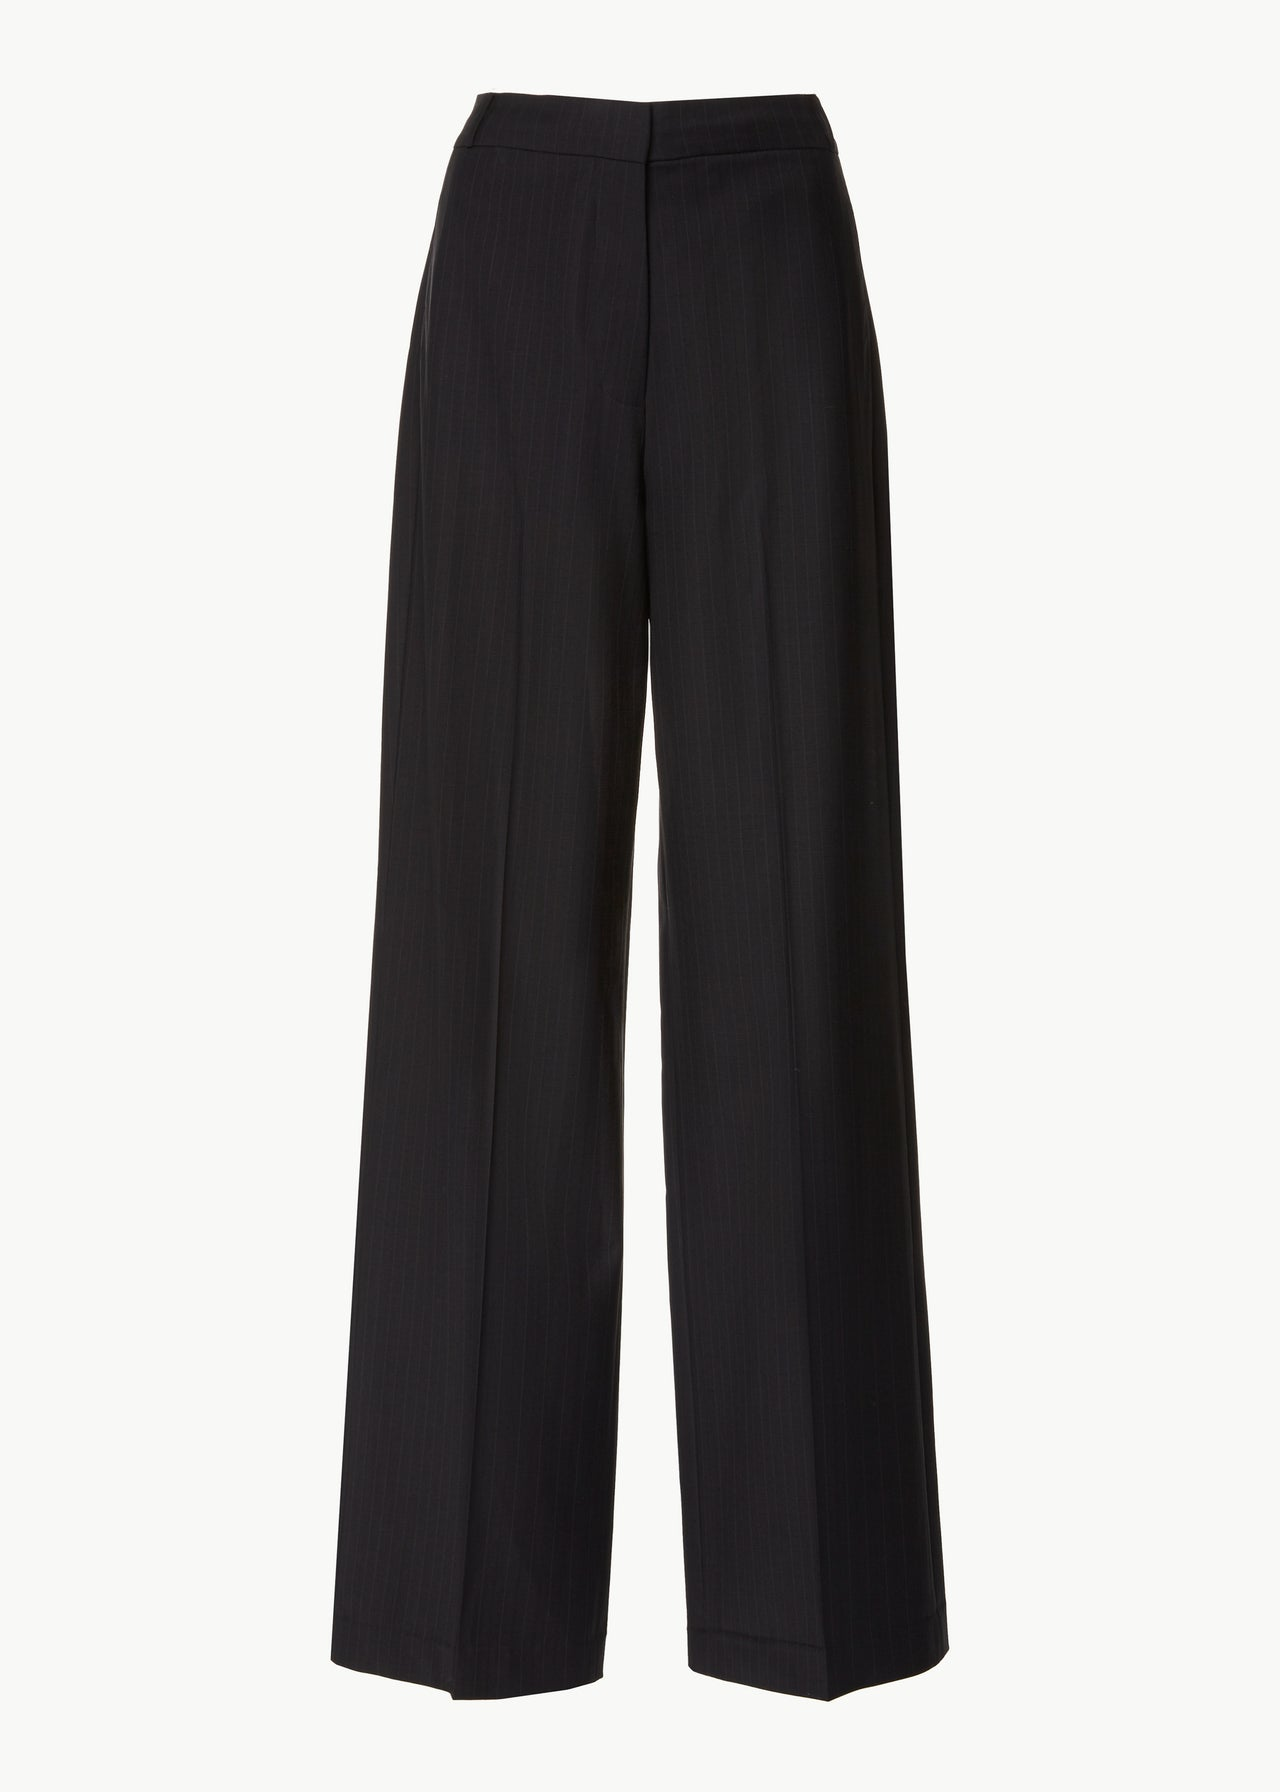 Straight Leg Trouser in Wool Pinstripe - Black